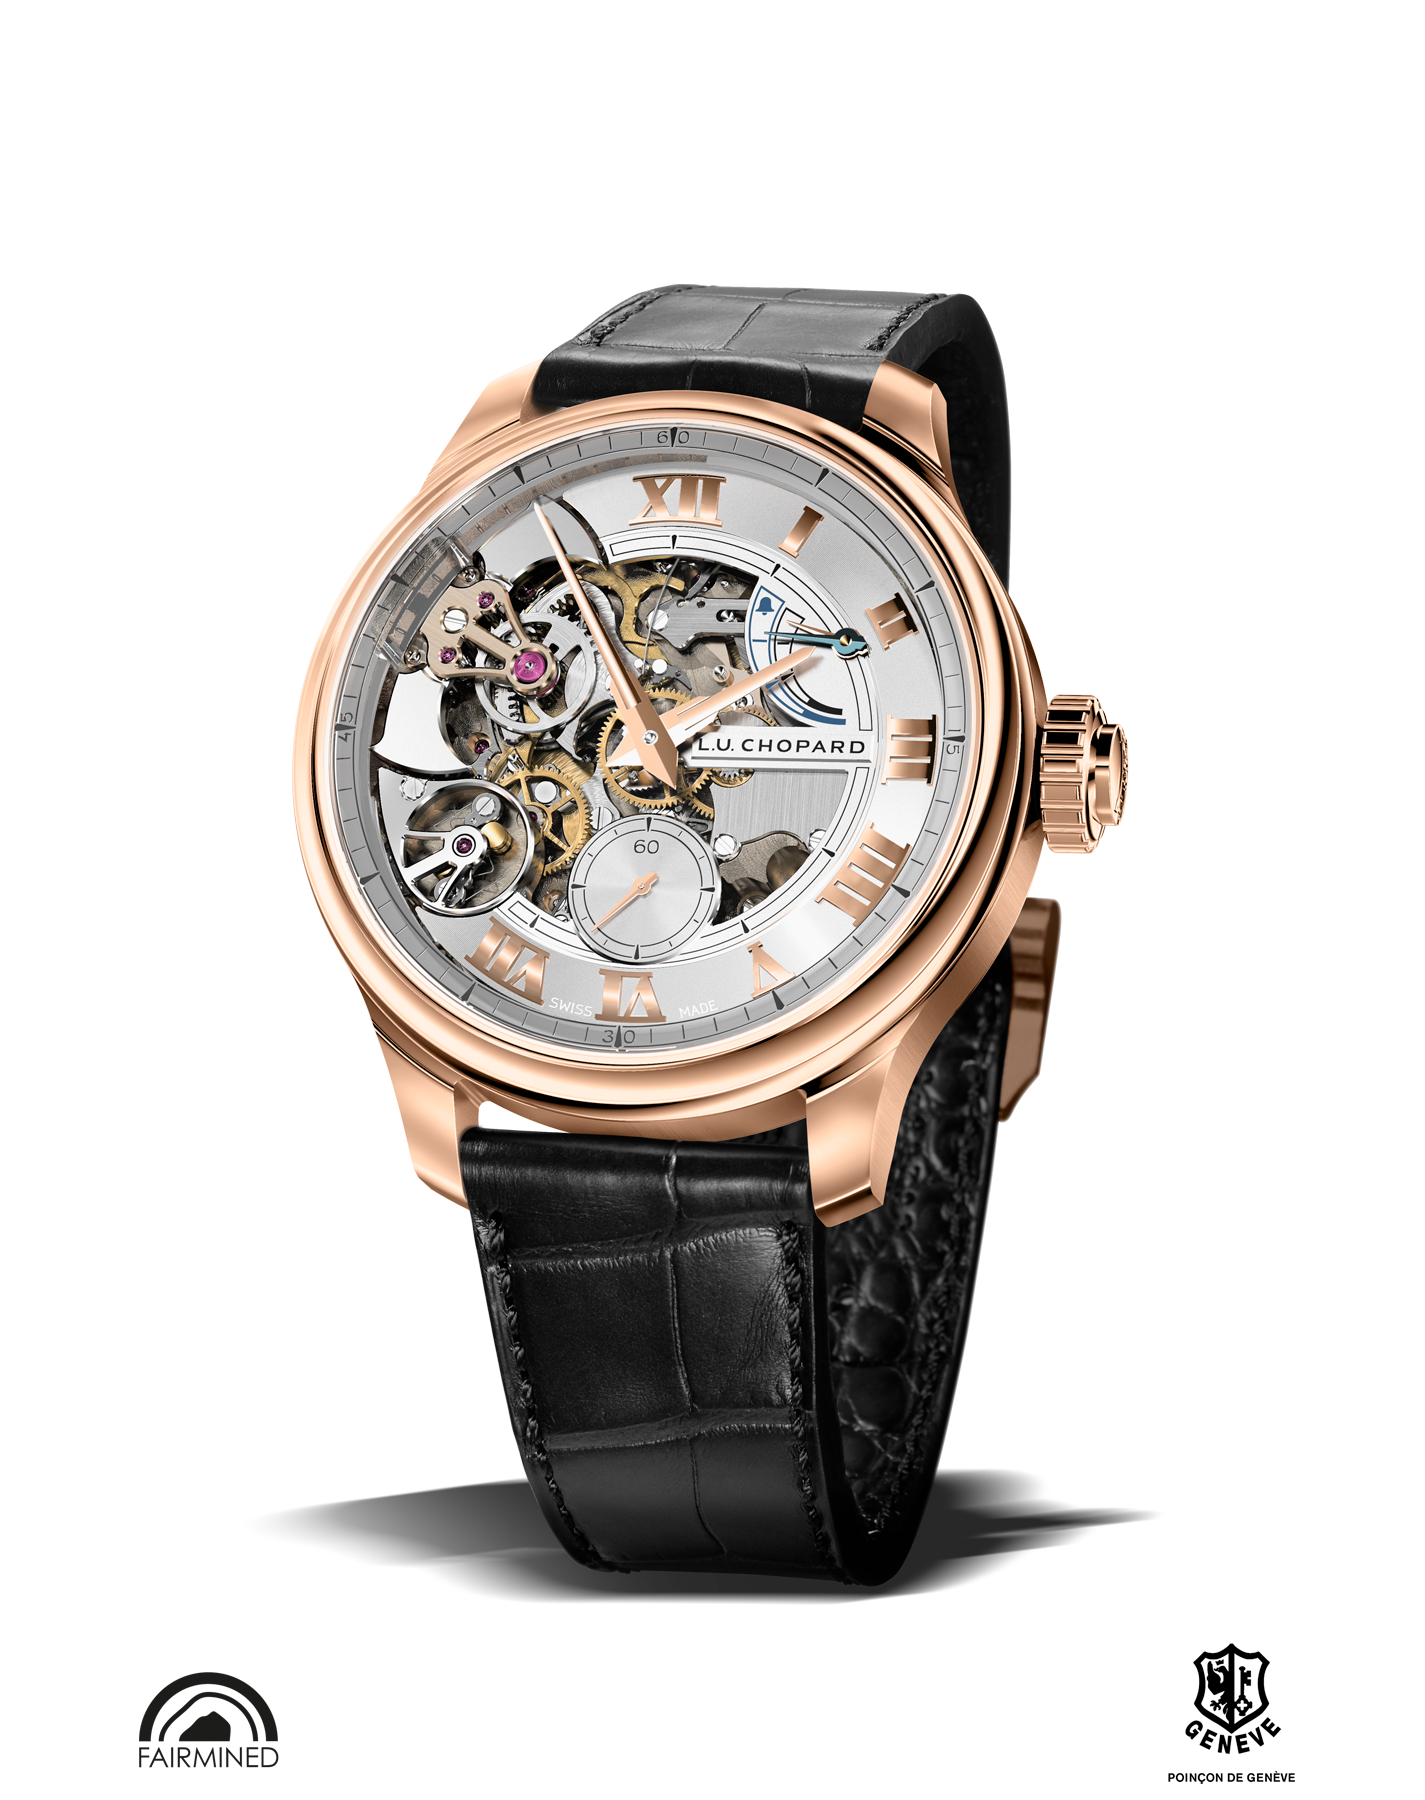 image of LUC full strike watch with poison de Geneve hallmark and Fairmined logo